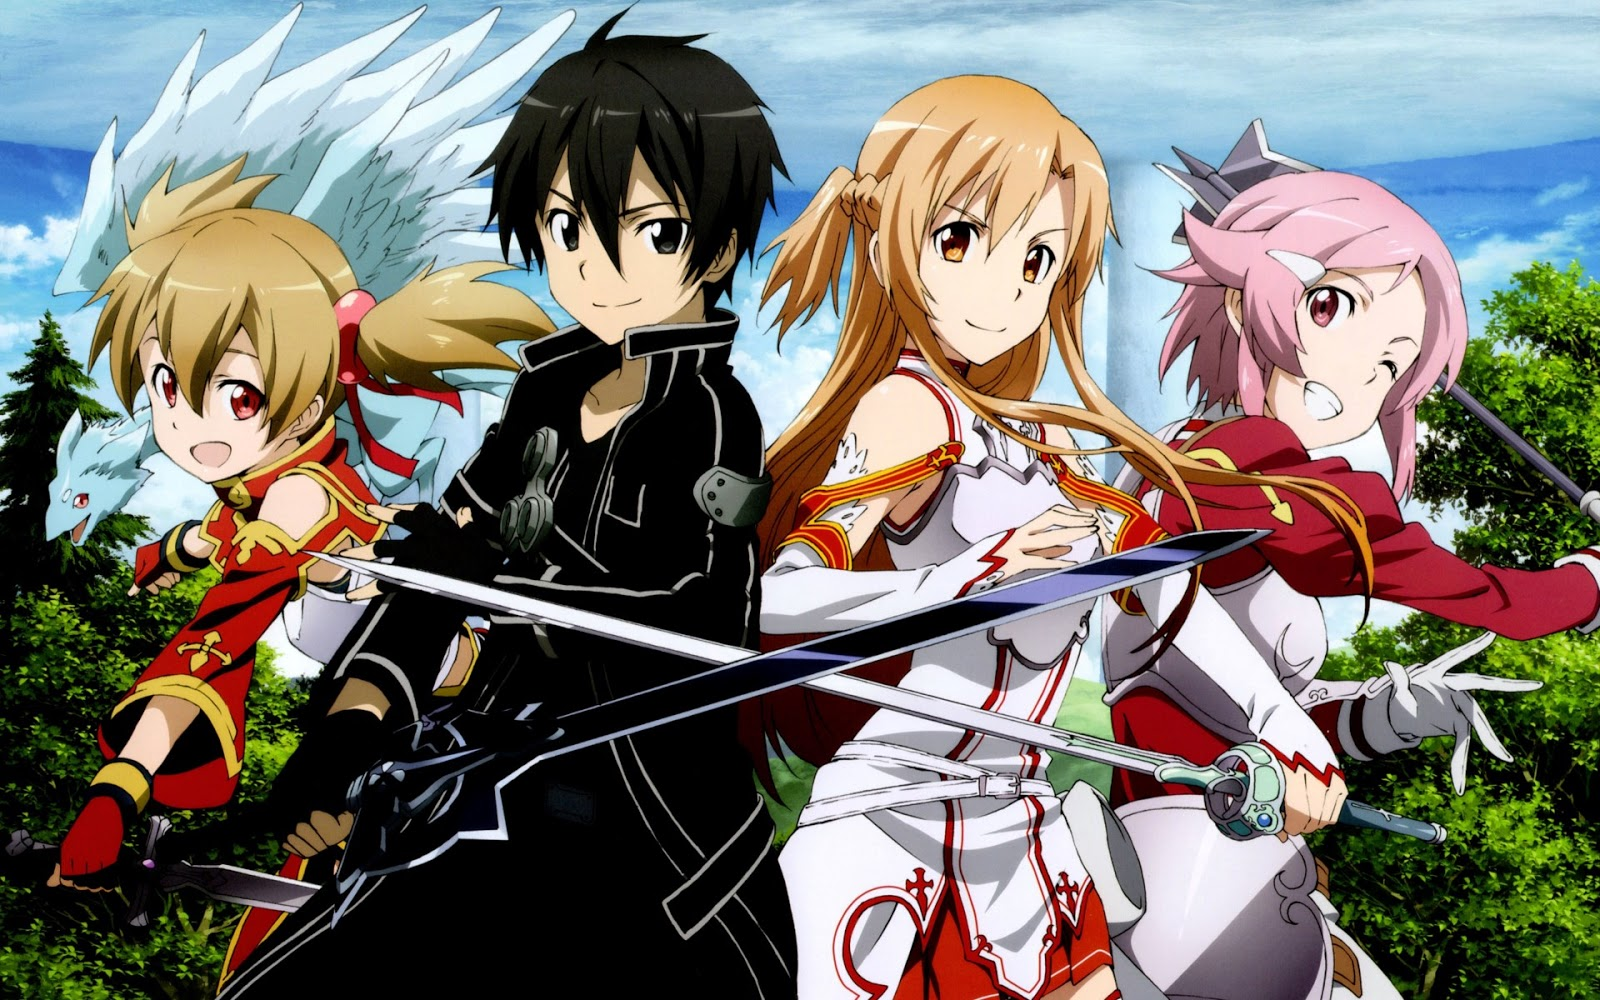 One Line Art Action : Sword art online is plugging into live action series